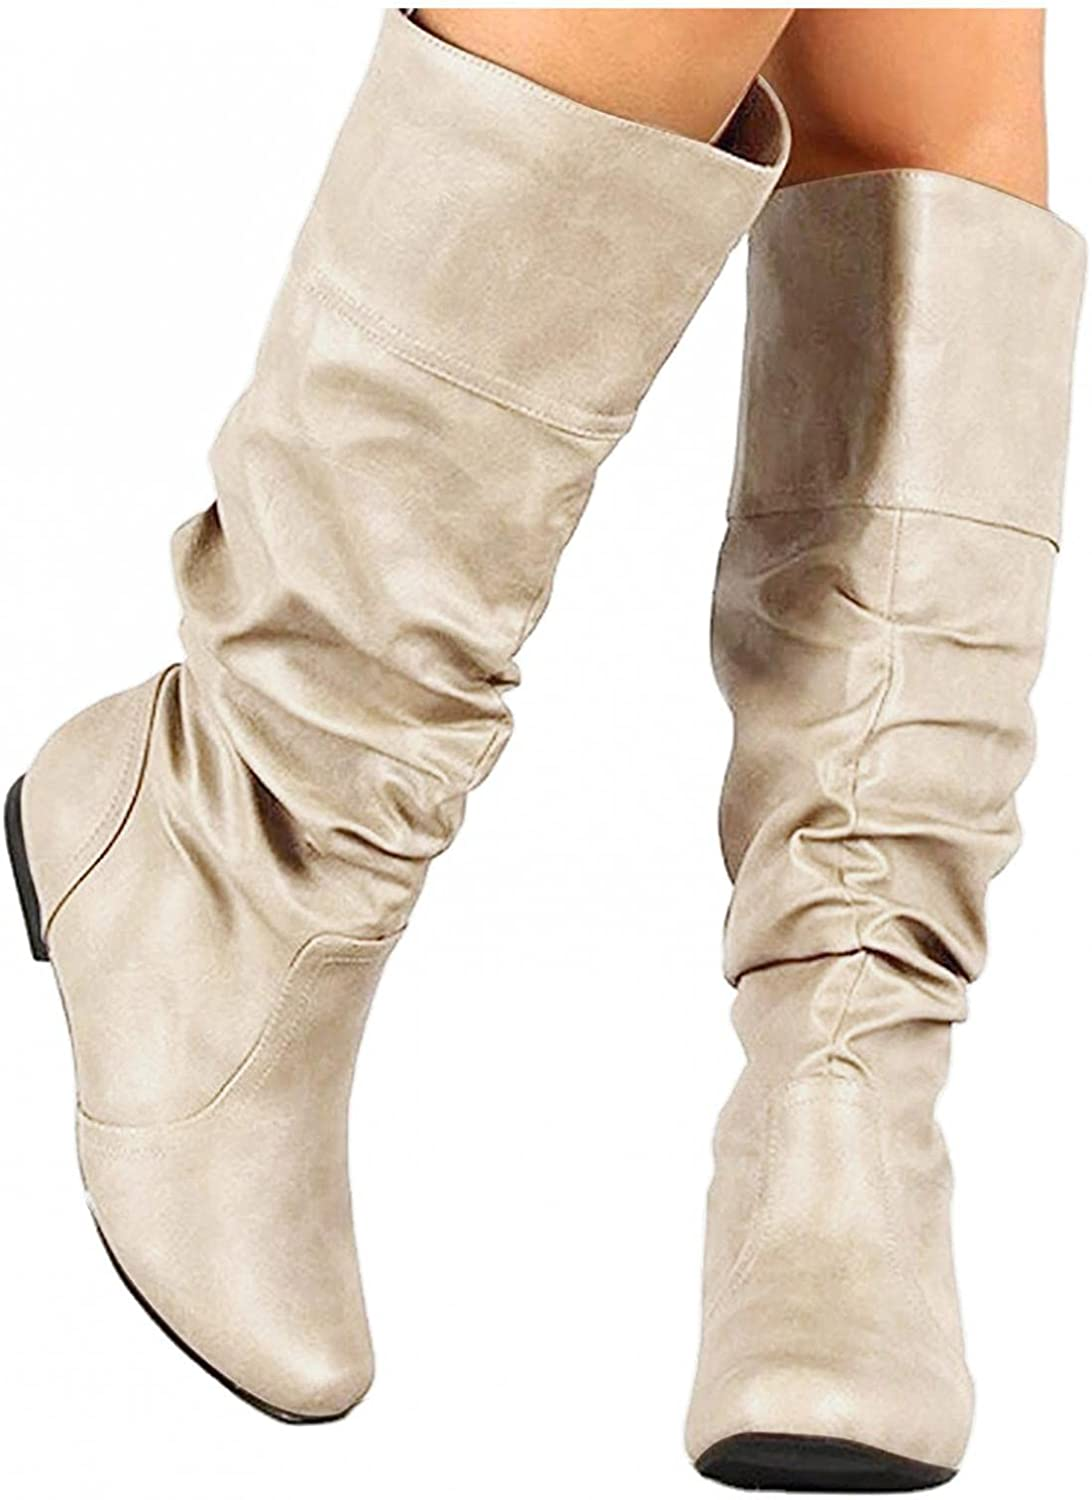 Eduavar Boots for NEW before selling ☆ Women We OFFer at cheap prices Women's Fashion Slouchy Toe Buckl Round